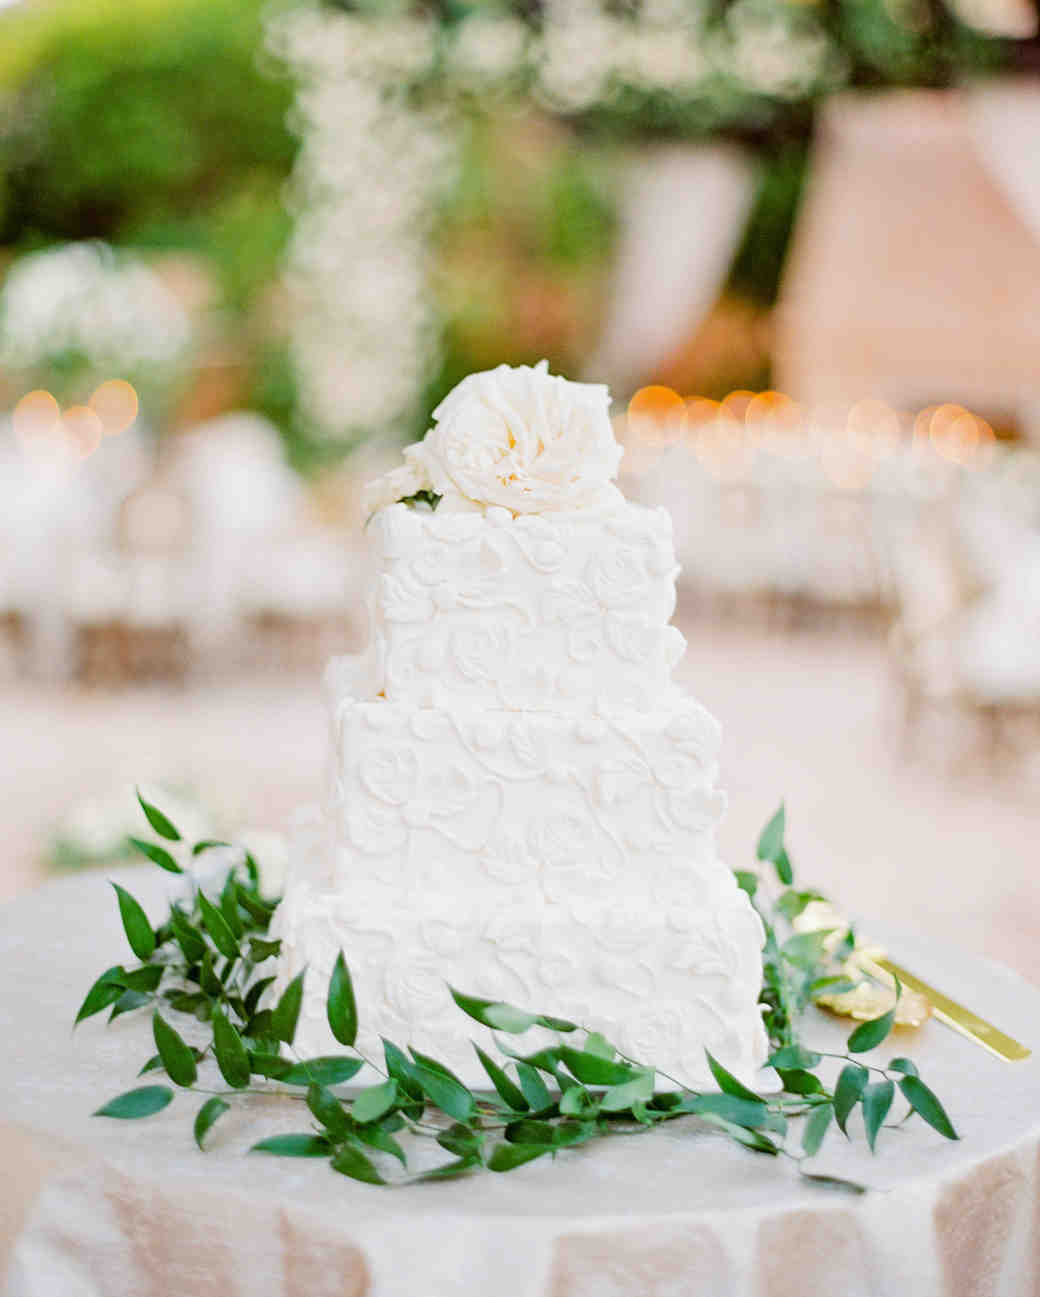 Elizabeth & Robert's 3-tier wedding cake